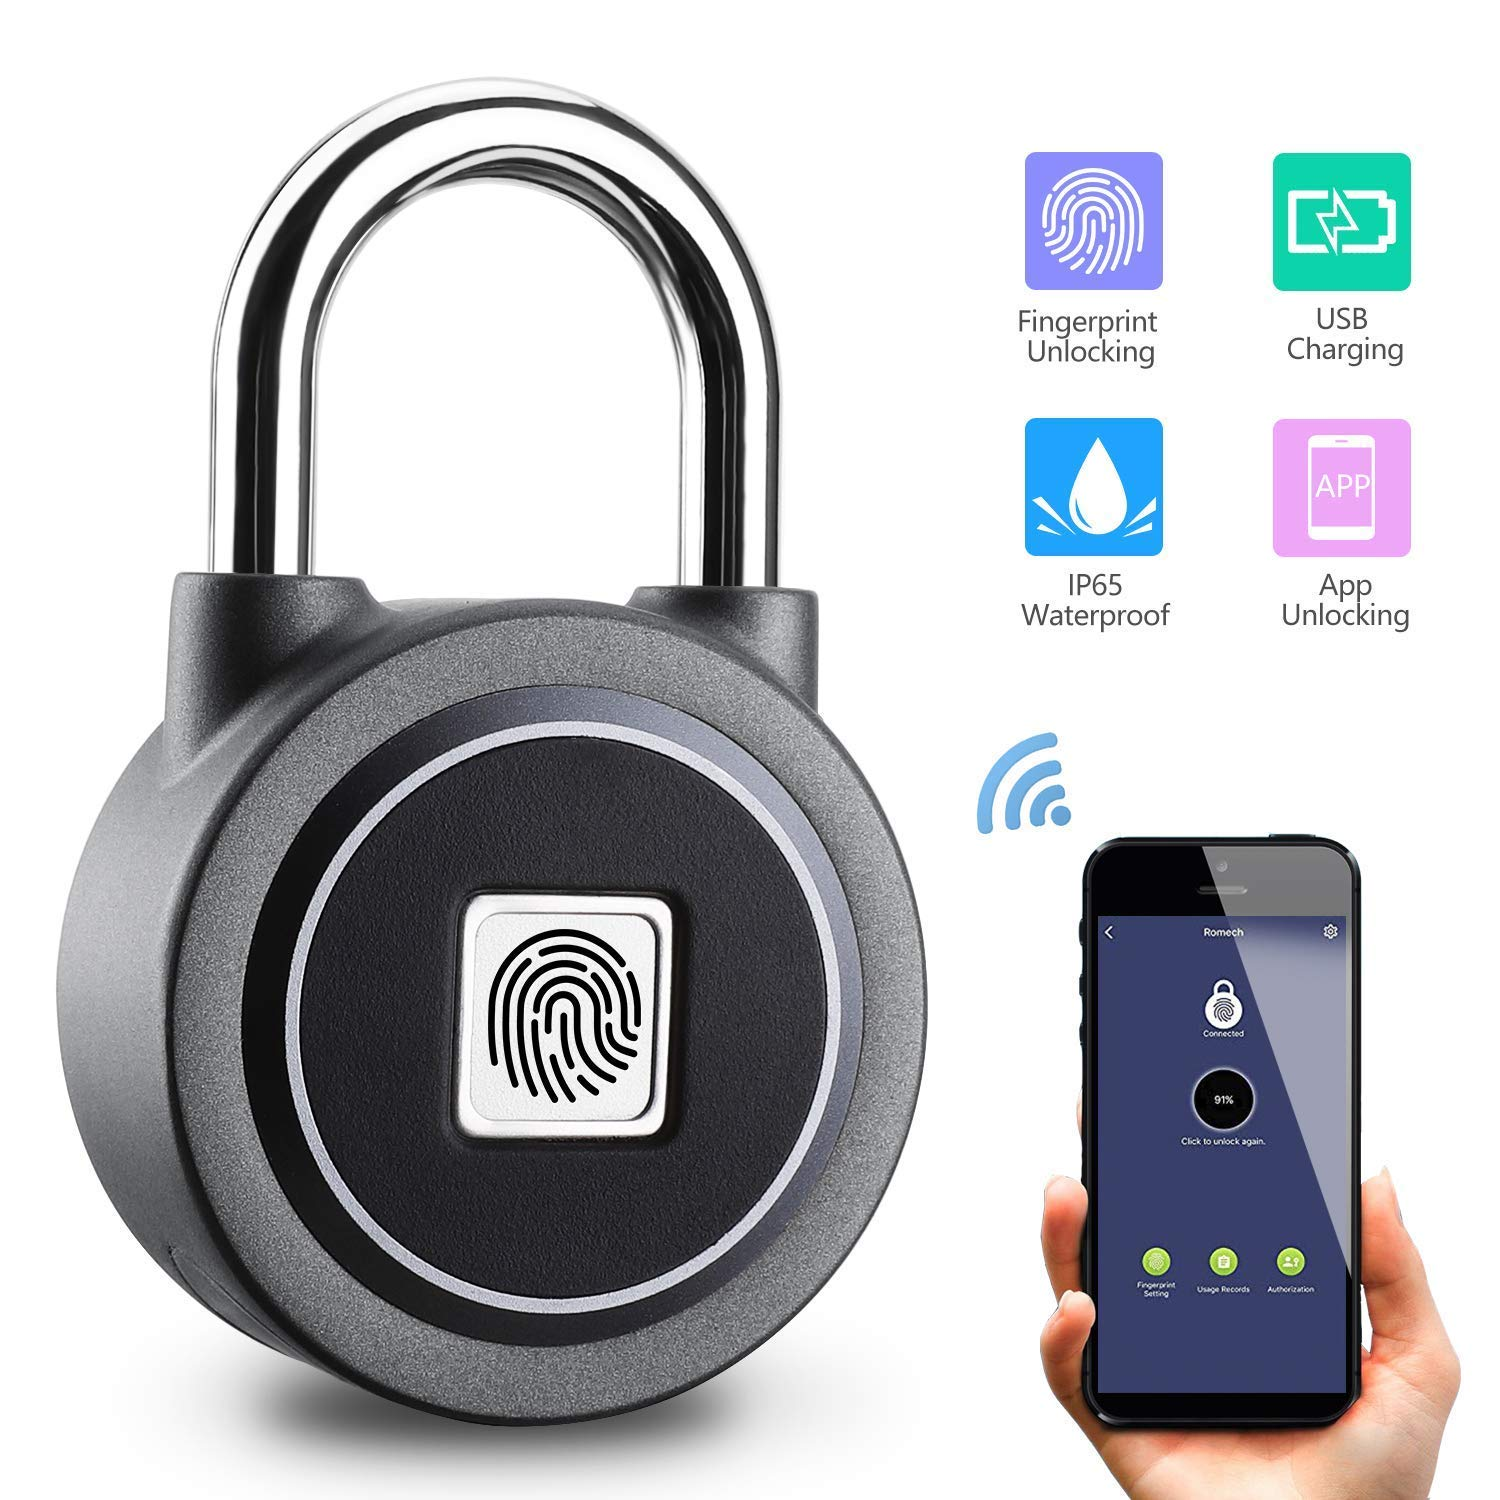 Fingerprint Padlock, Bluetooth Connection Metal Waterproof, Suitable for House Door, Suitcase, Backpack, Gym, Bike, Office (Grey) by WGCC